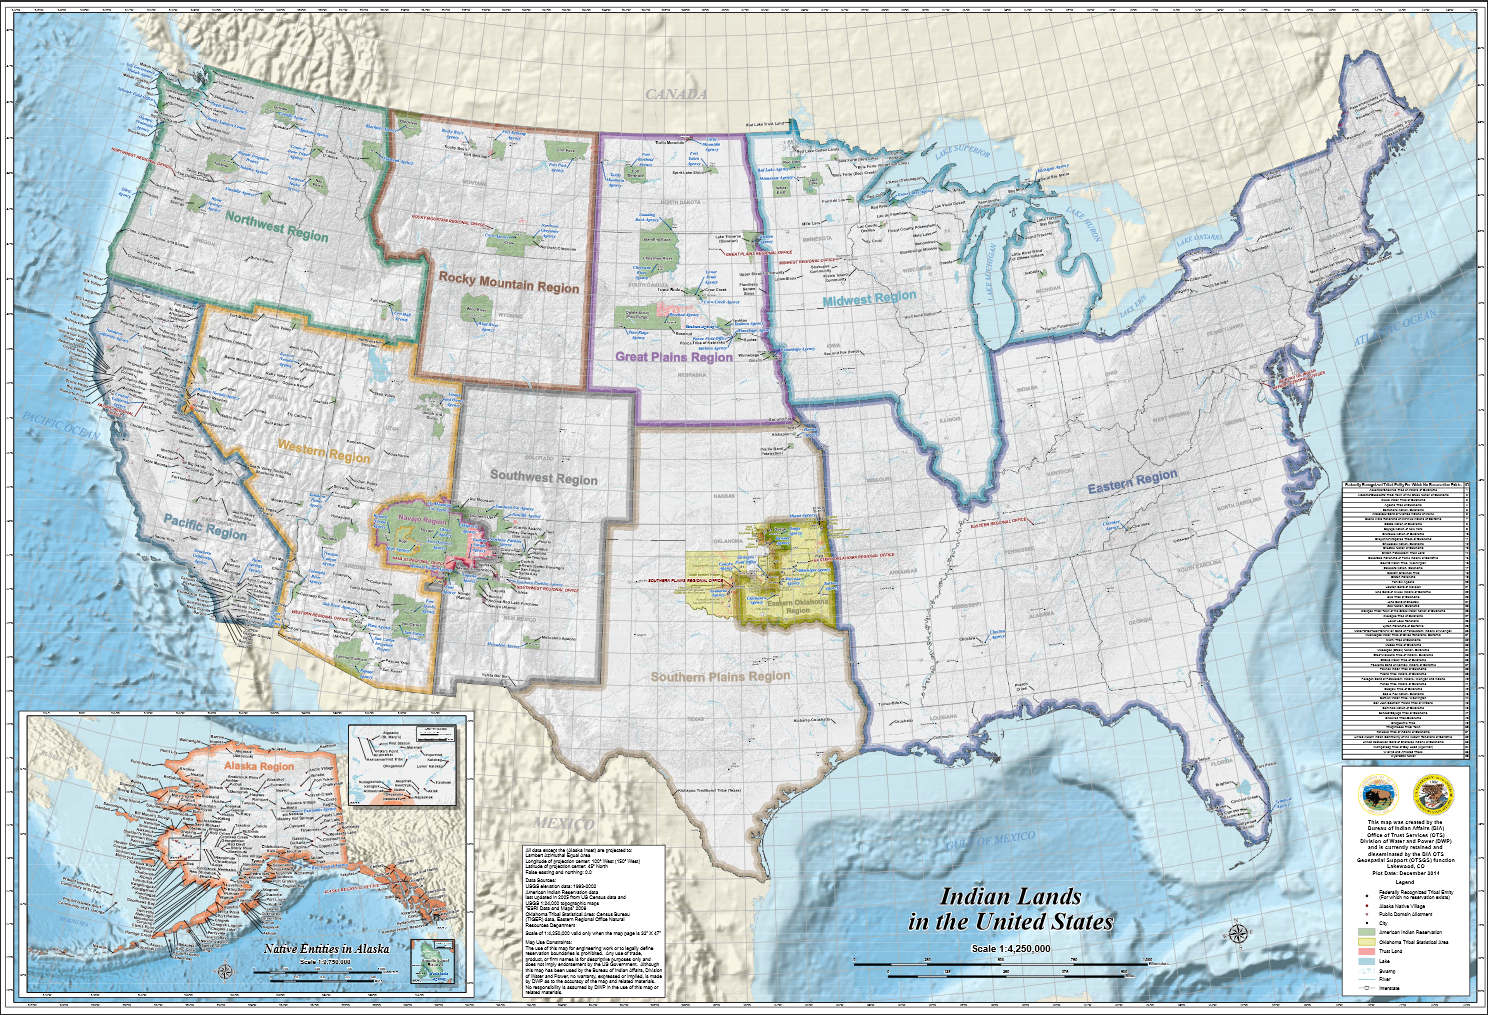 Map Of Indian Nations In The Us - Map of indian lands in the us